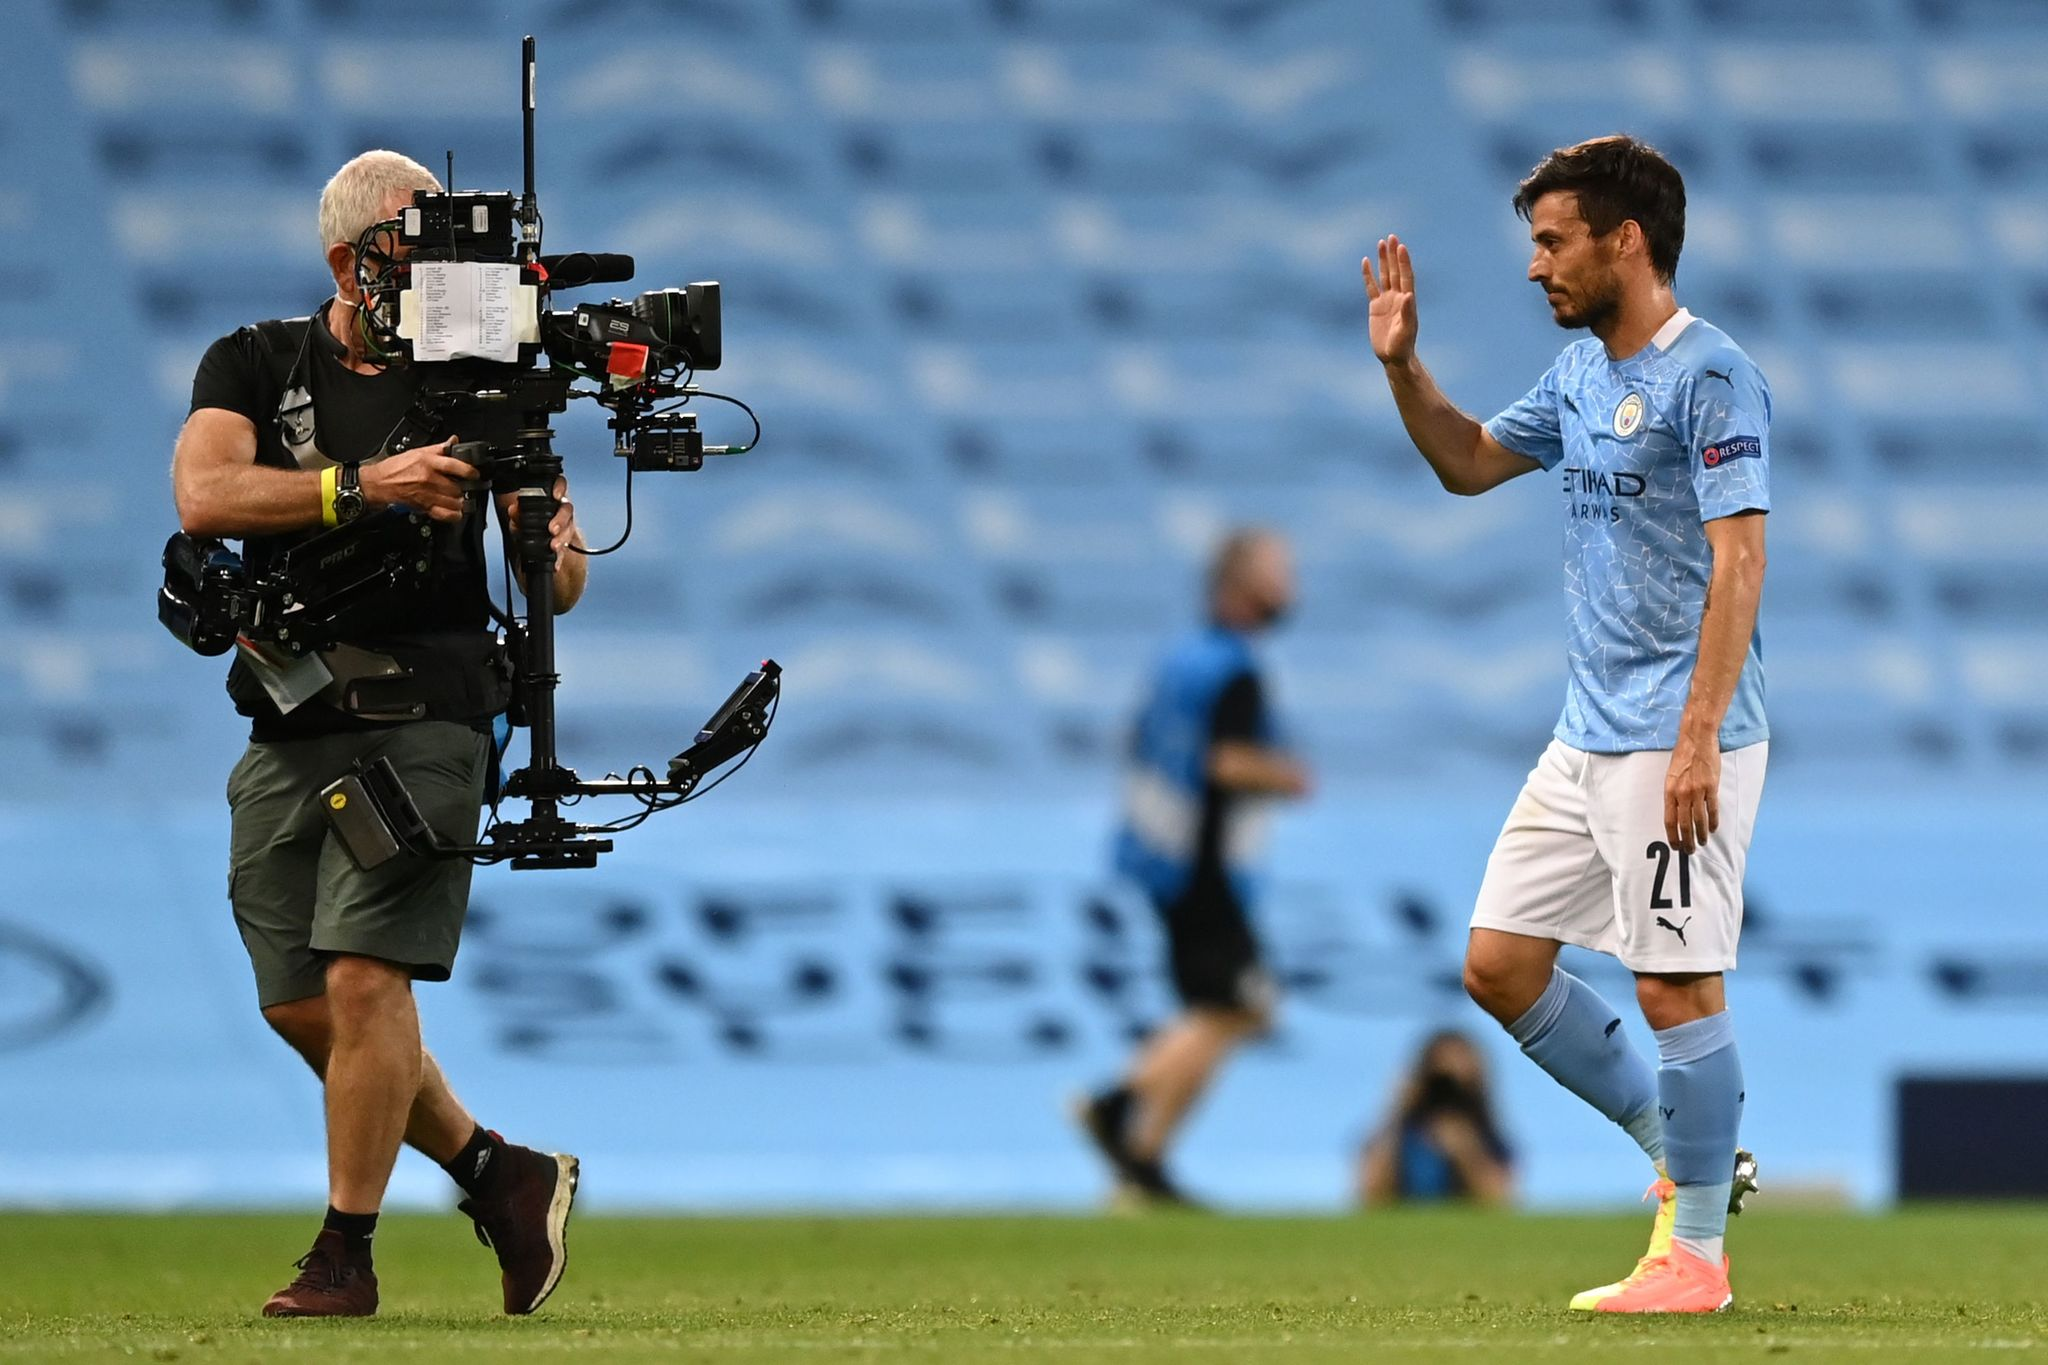 Manchester lt;HIT gt;City lt;/HIT gt;s Spanish midfielder David lt;HIT gt;Silva lt;/HIT gt; (R) waves into the lens of a television camera operator after the UEFA Champions League round of 16 second leg football match between Manchester lt;HIT gt;City lt;/HIT gt; and Real Madrid at the Etihad Stadium in Manchester, north west England on August 7, 2020. - Manchester lt;HIT gt;City lt;/HIT gt; won the match 2-1. (Photo by Shaun Botterill / POOL / AFP)